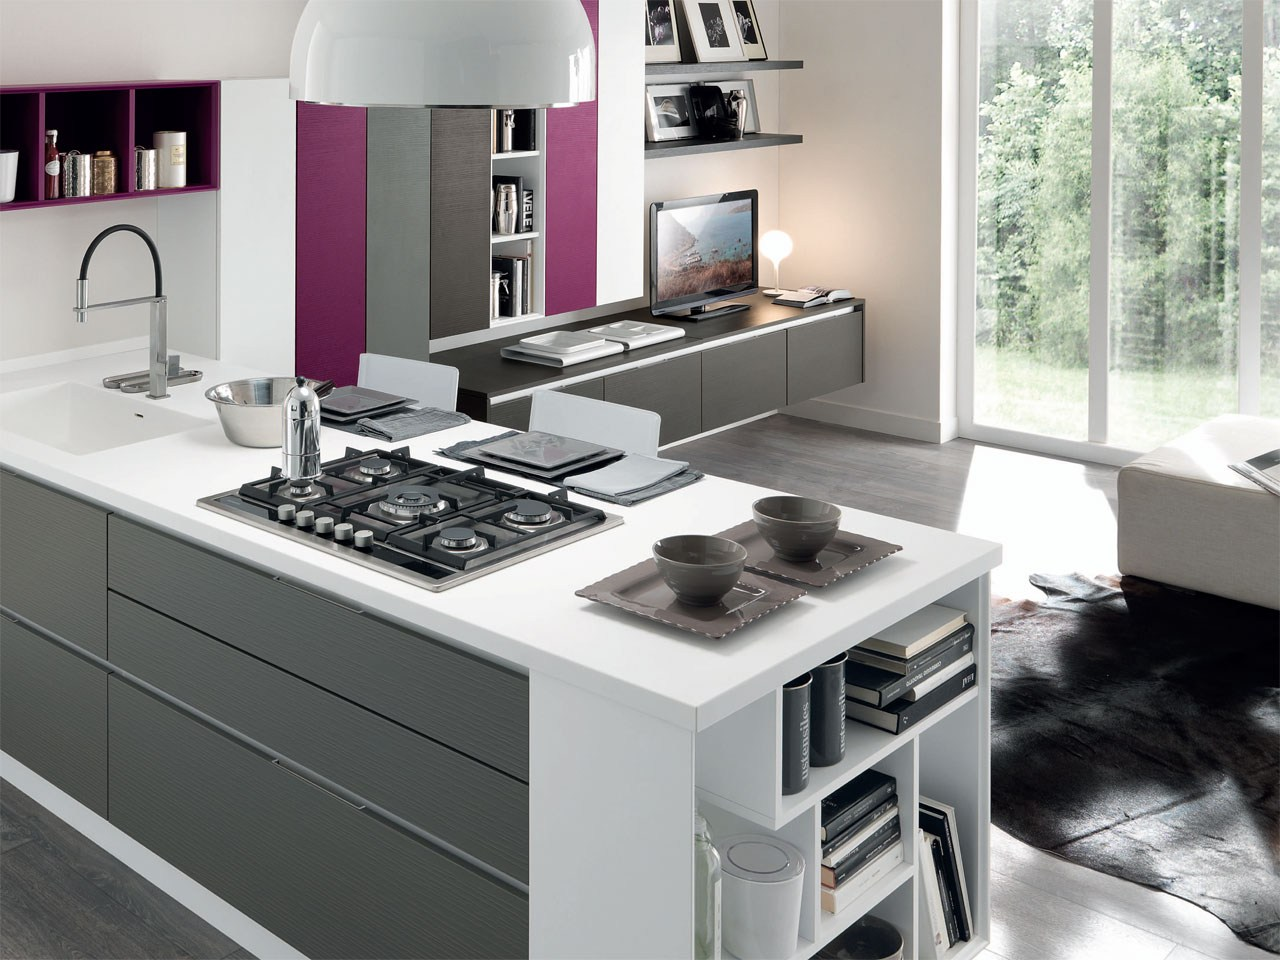 essenza wooden kitchen by cucine lube. Black Bedroom Furniture Sets. Home Design Ideas